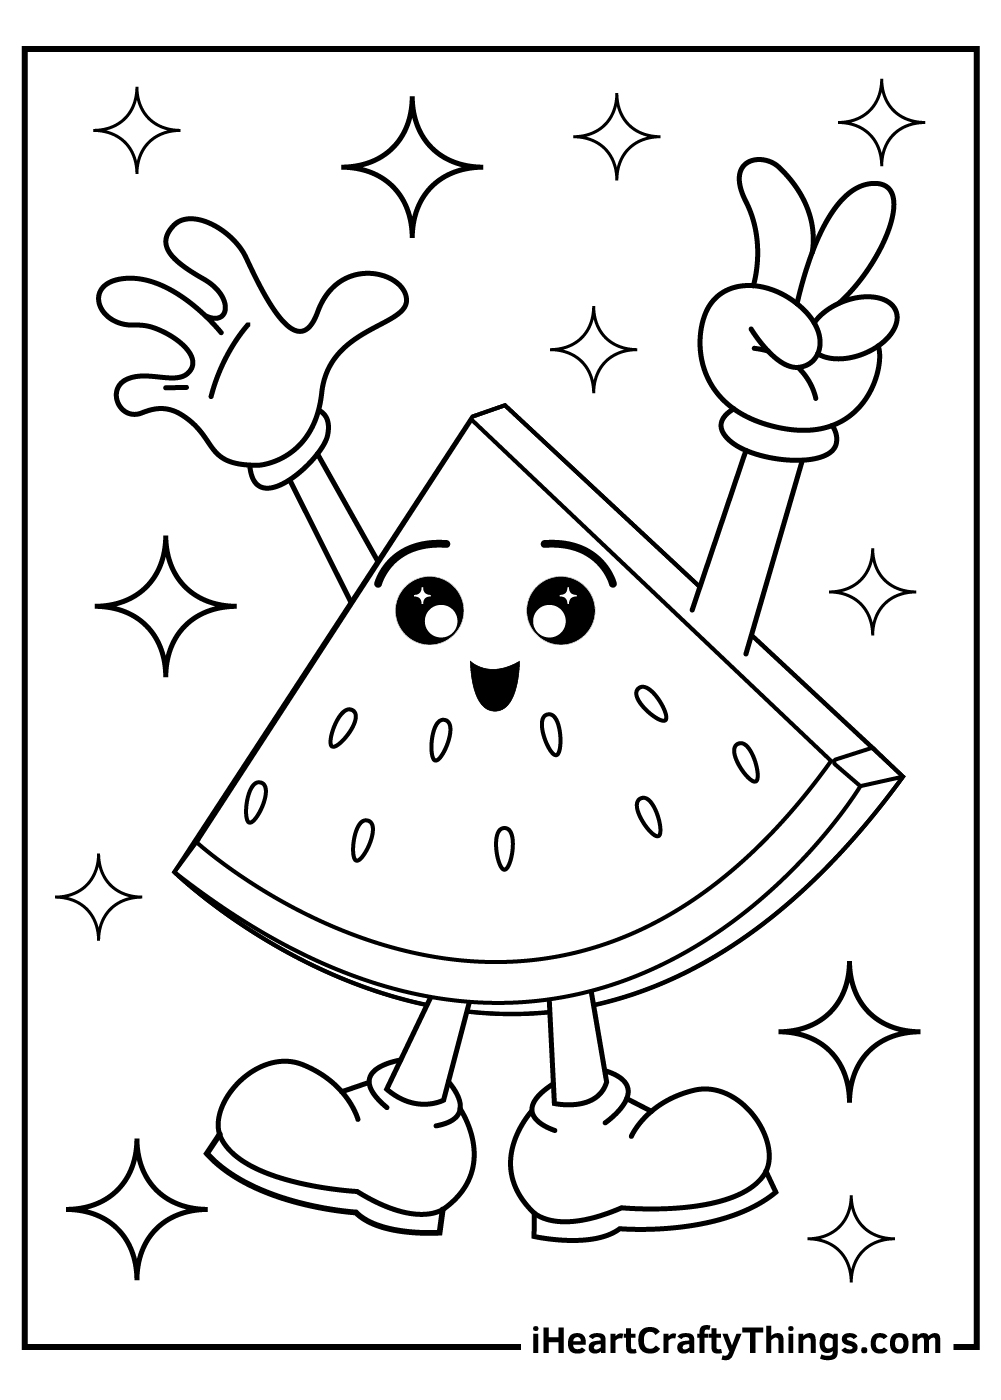 cute watermelon slices coloring pages free printable